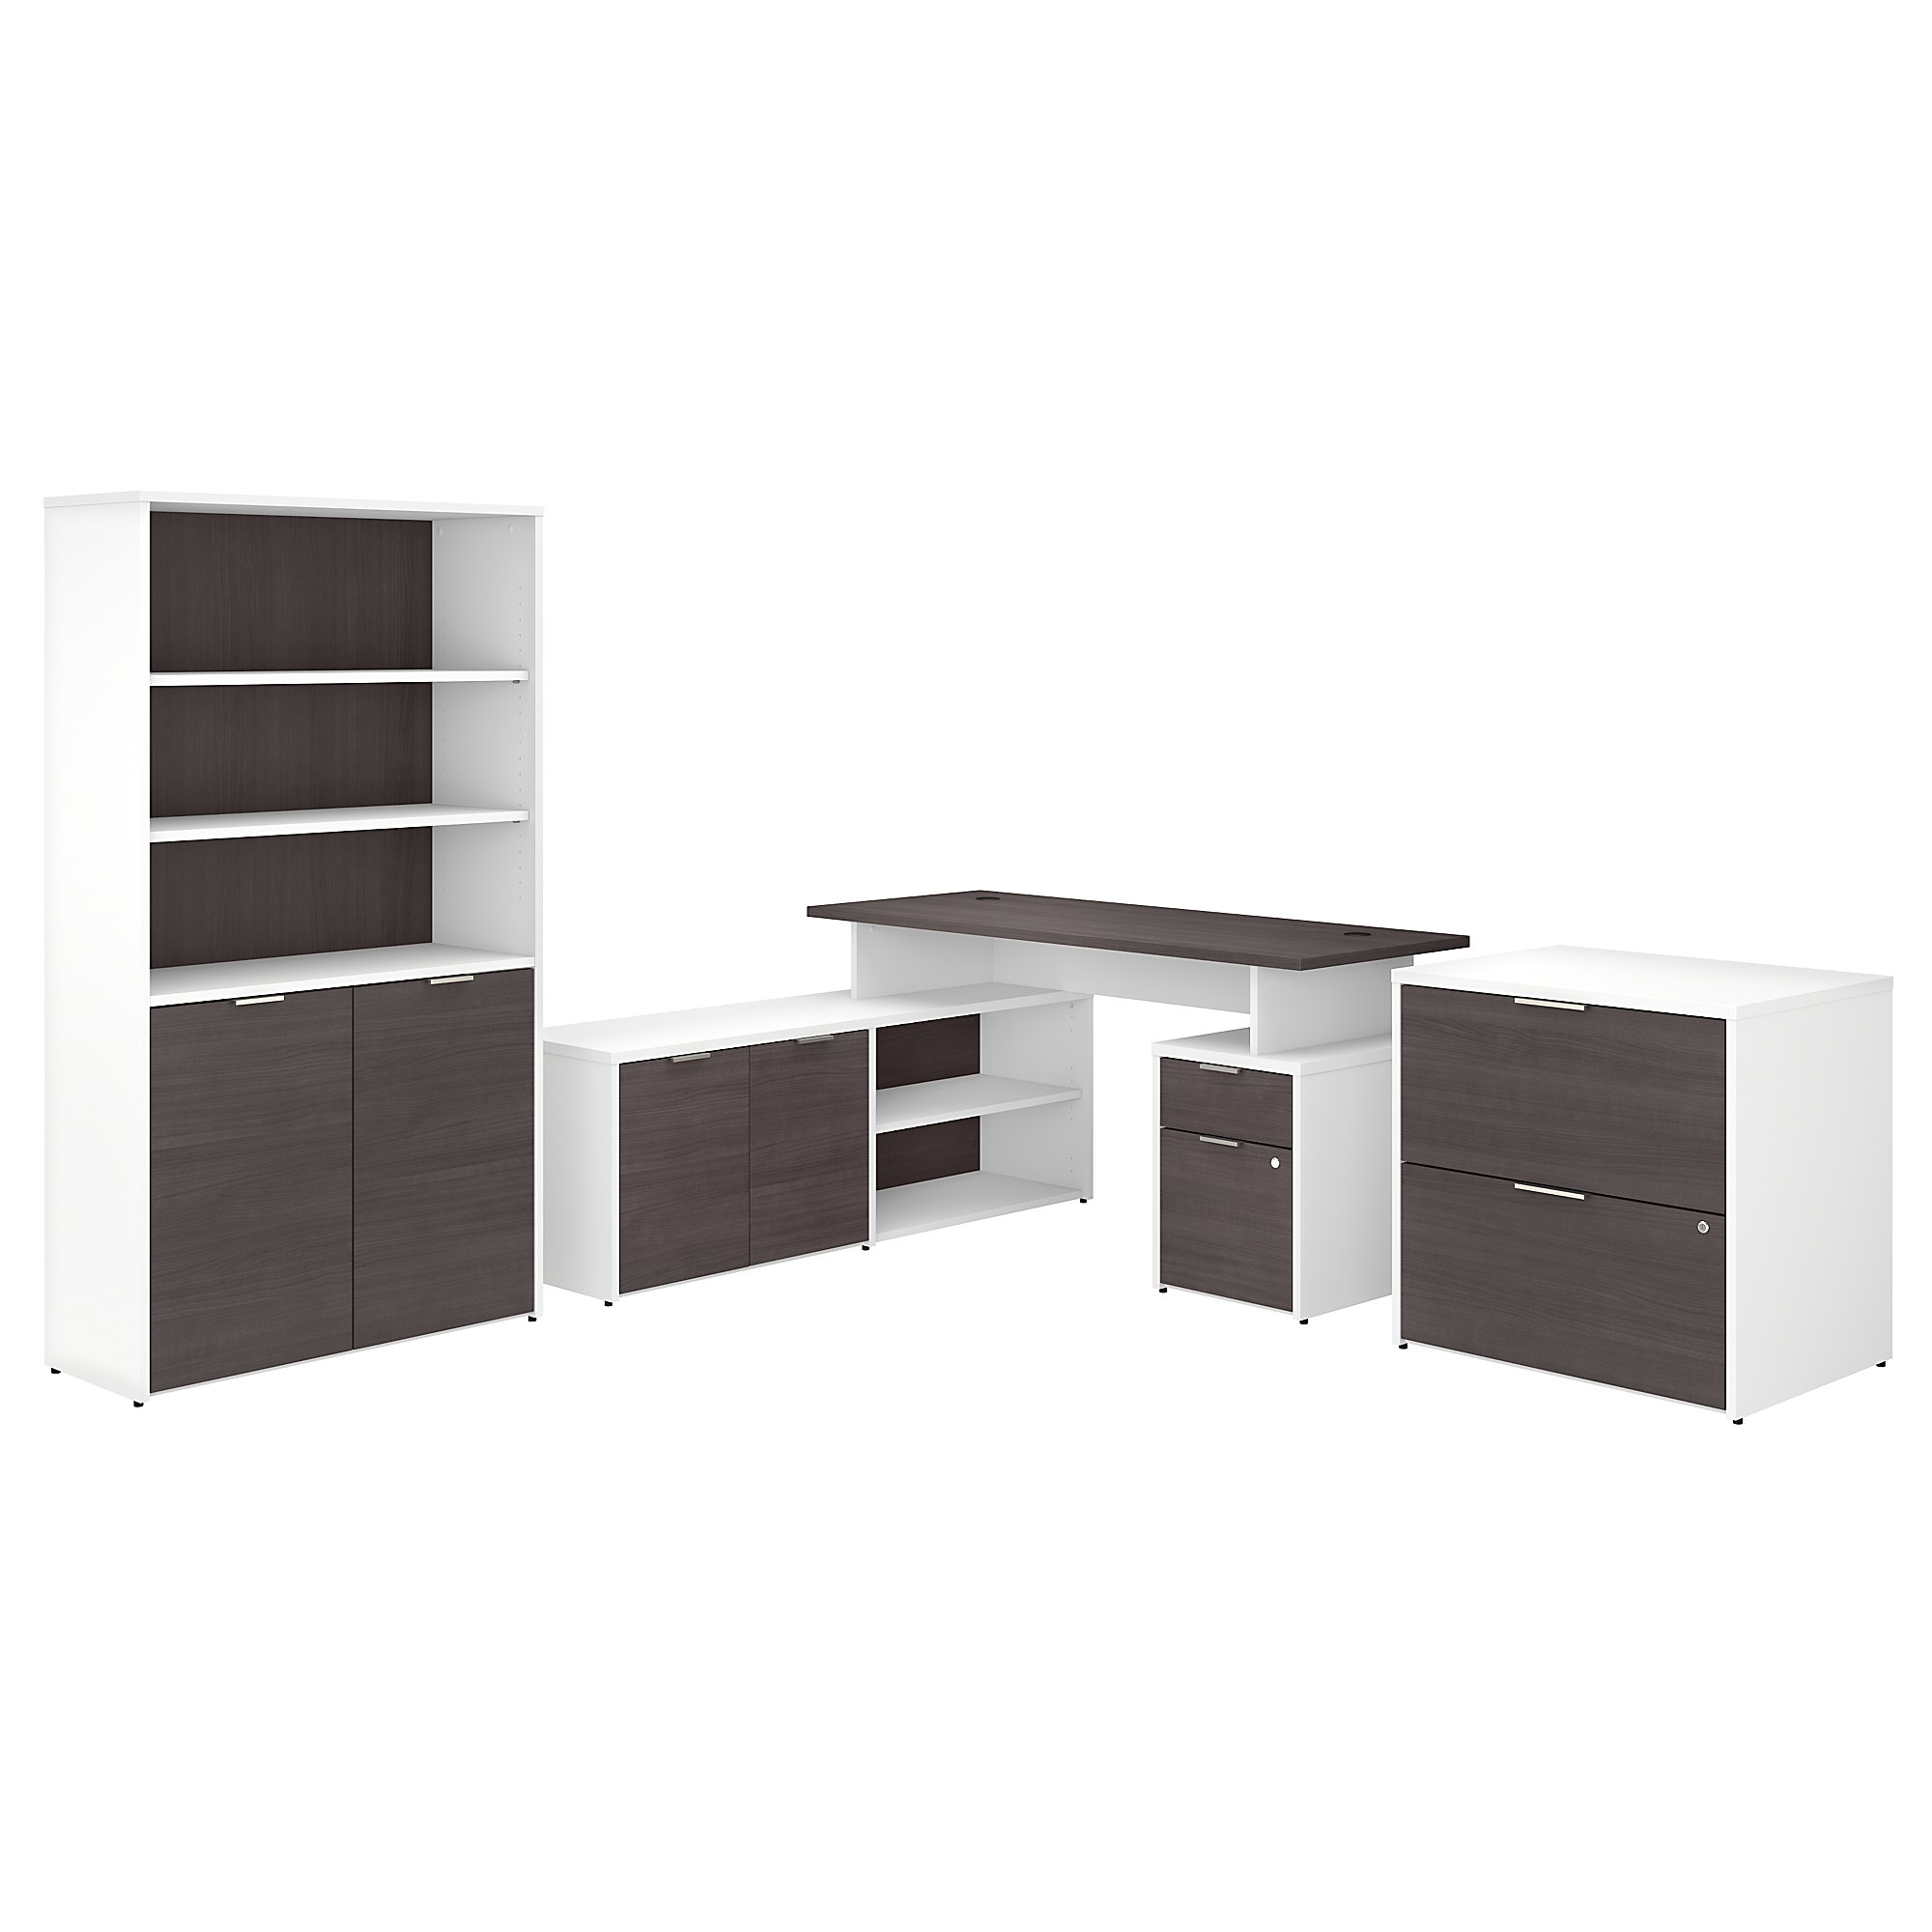 jamestown jtn023 storm gray and white l desk set